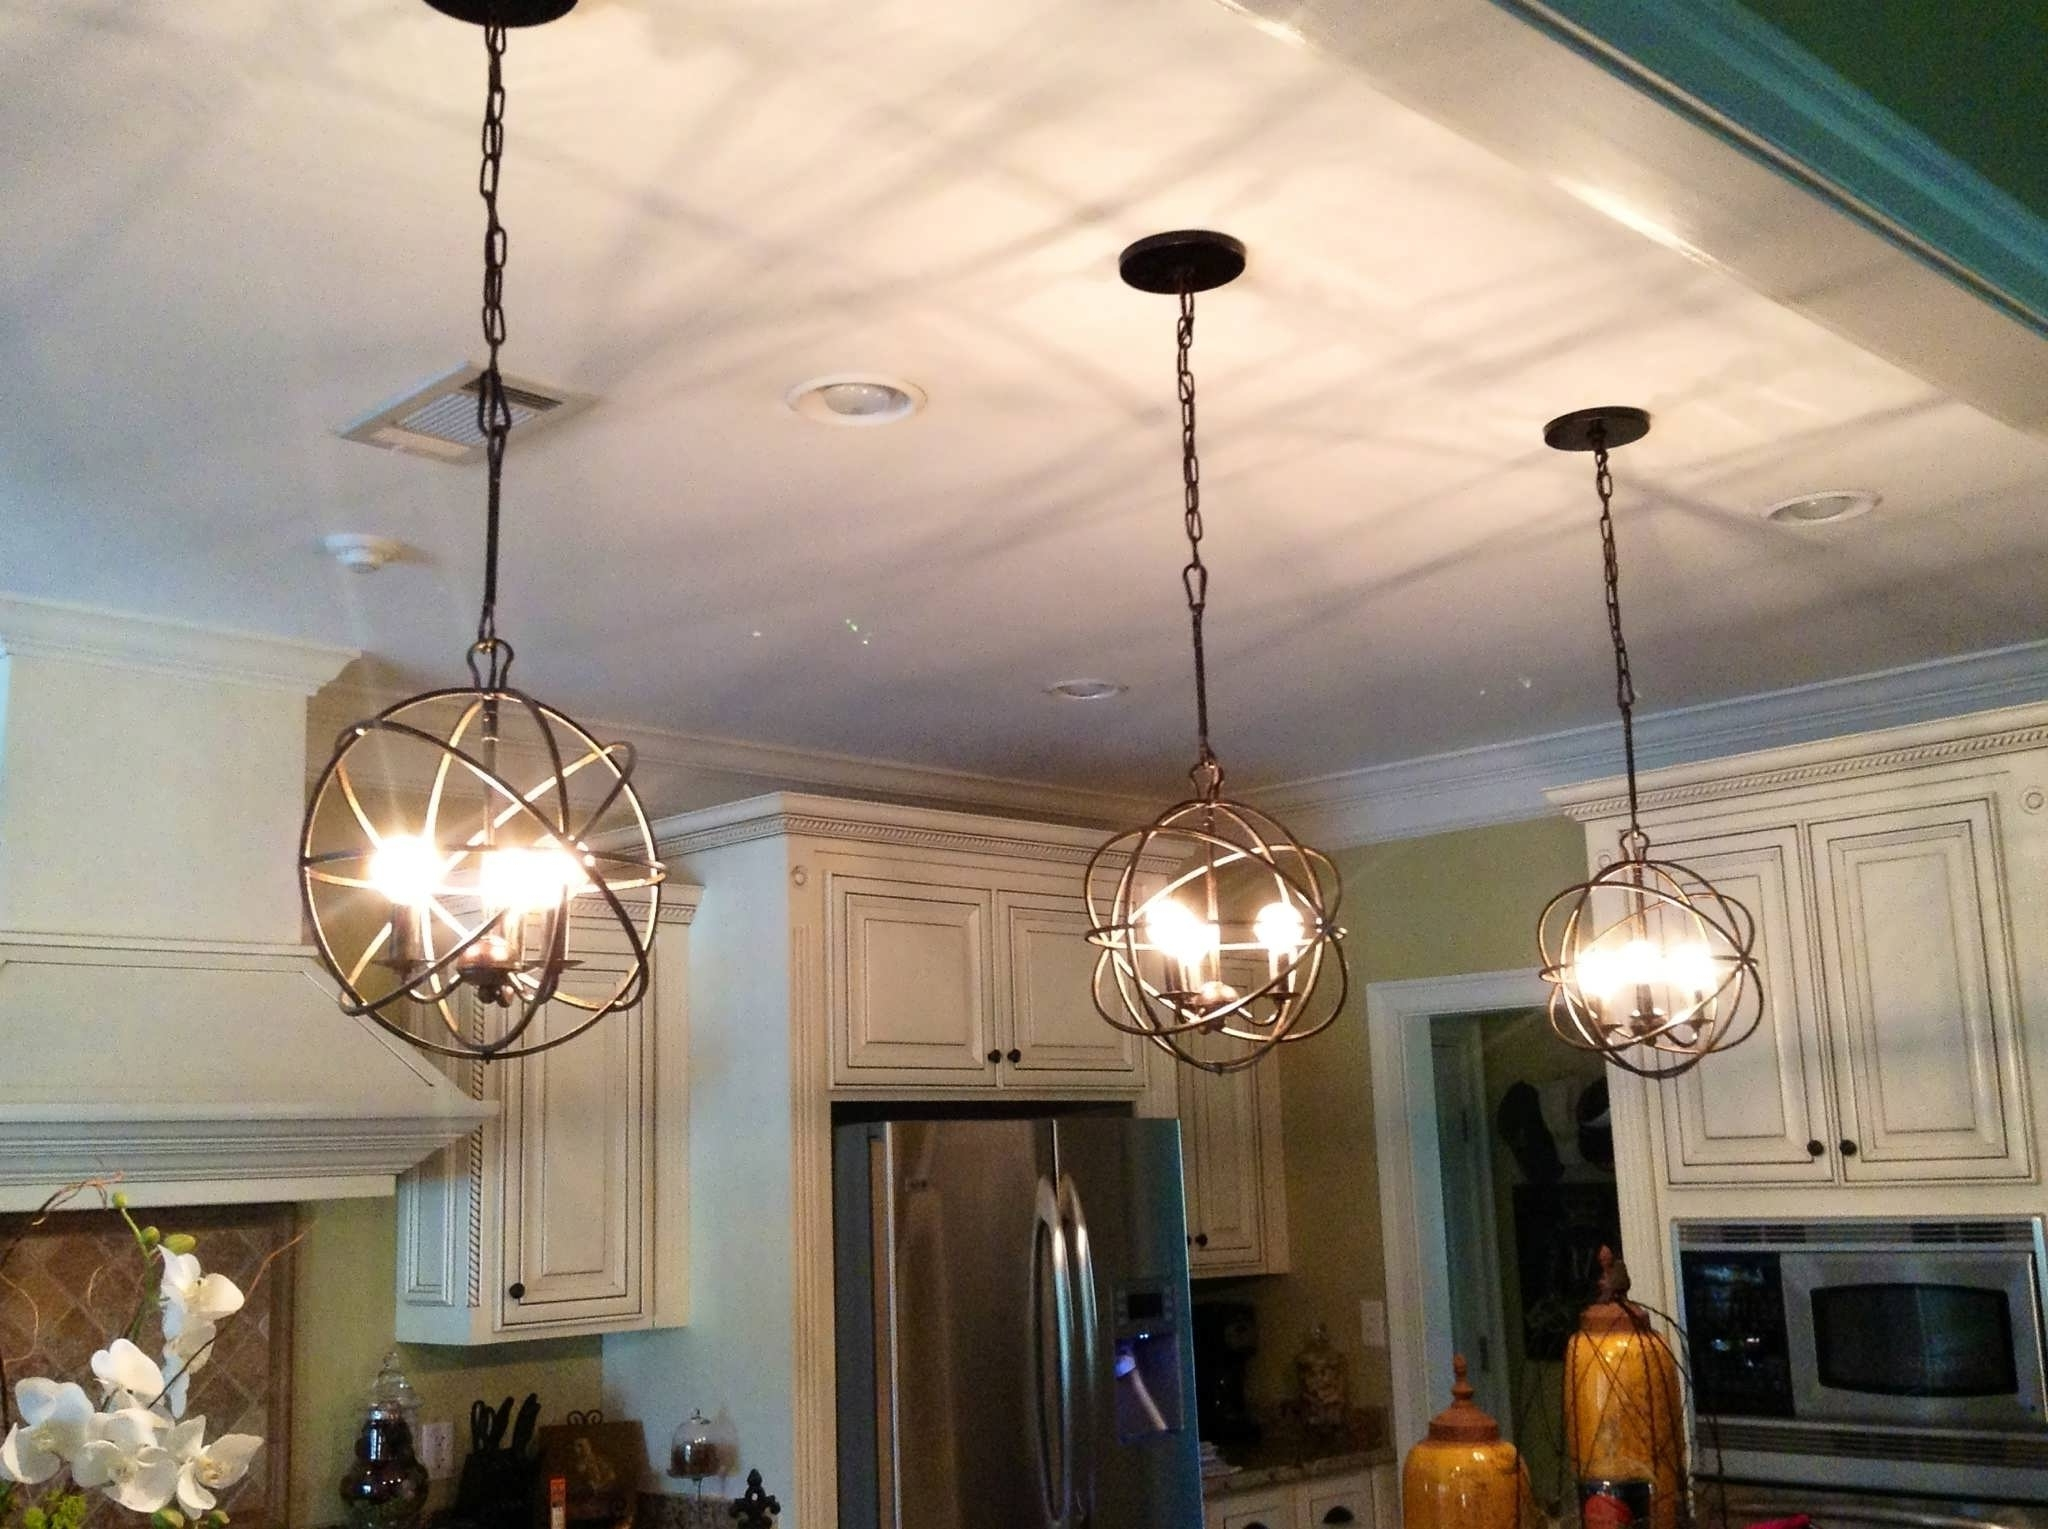 Large Globe Chandelier With Regard To Well Known Chandelier : Chandelier Lights Pendant Ceiling Lights Large Globe (View 10 of 15)